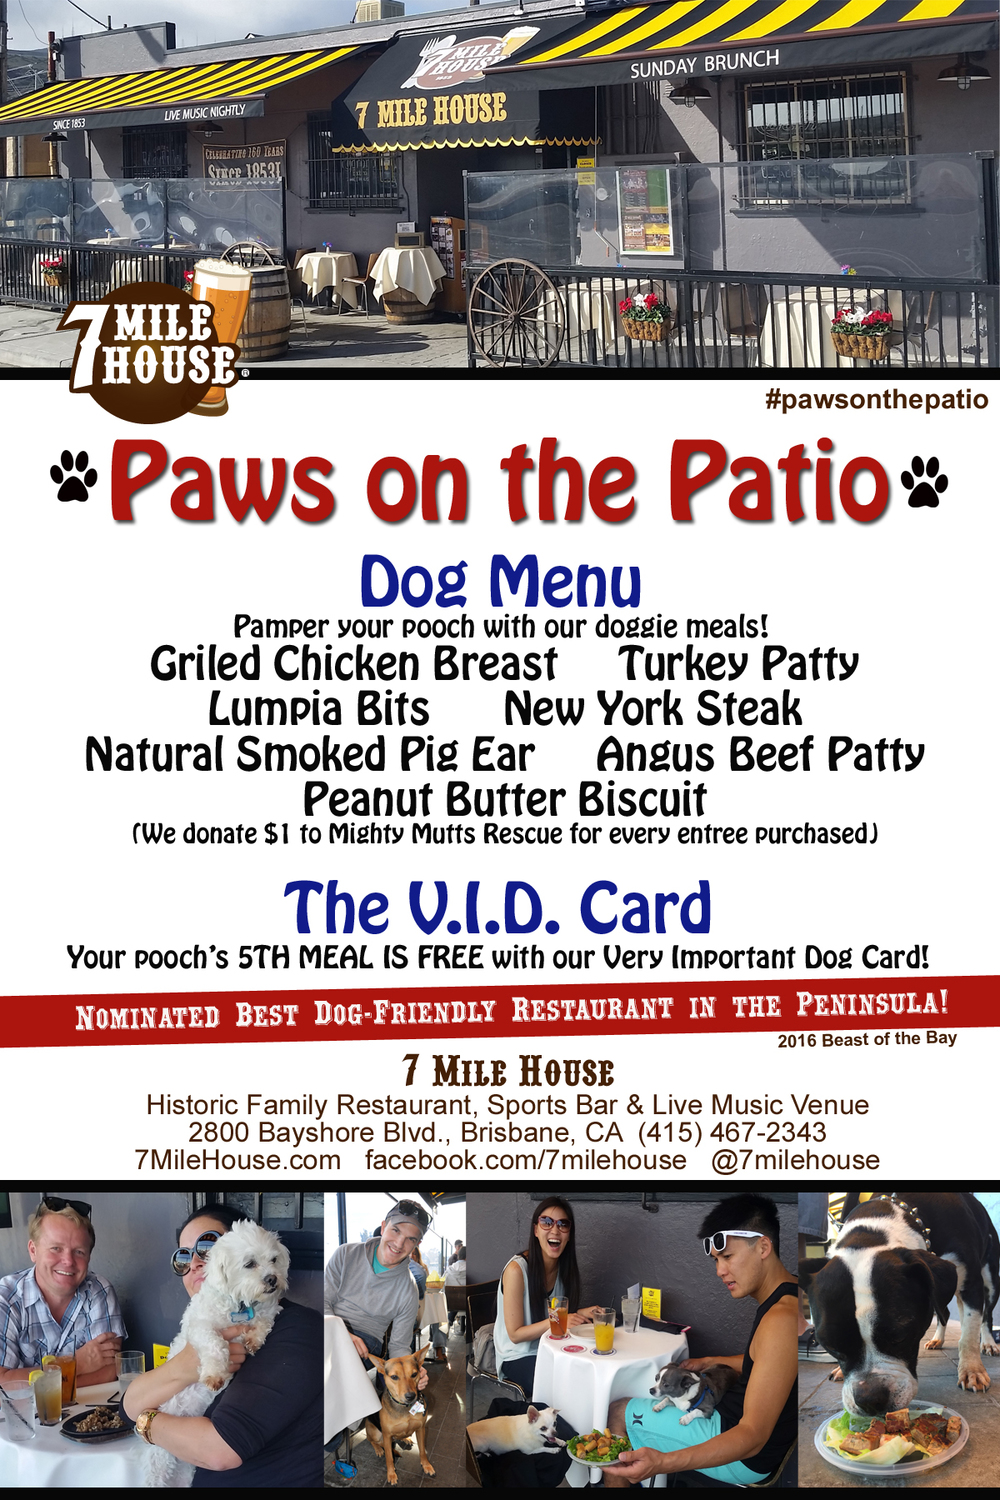 7 mile house paws on the patio